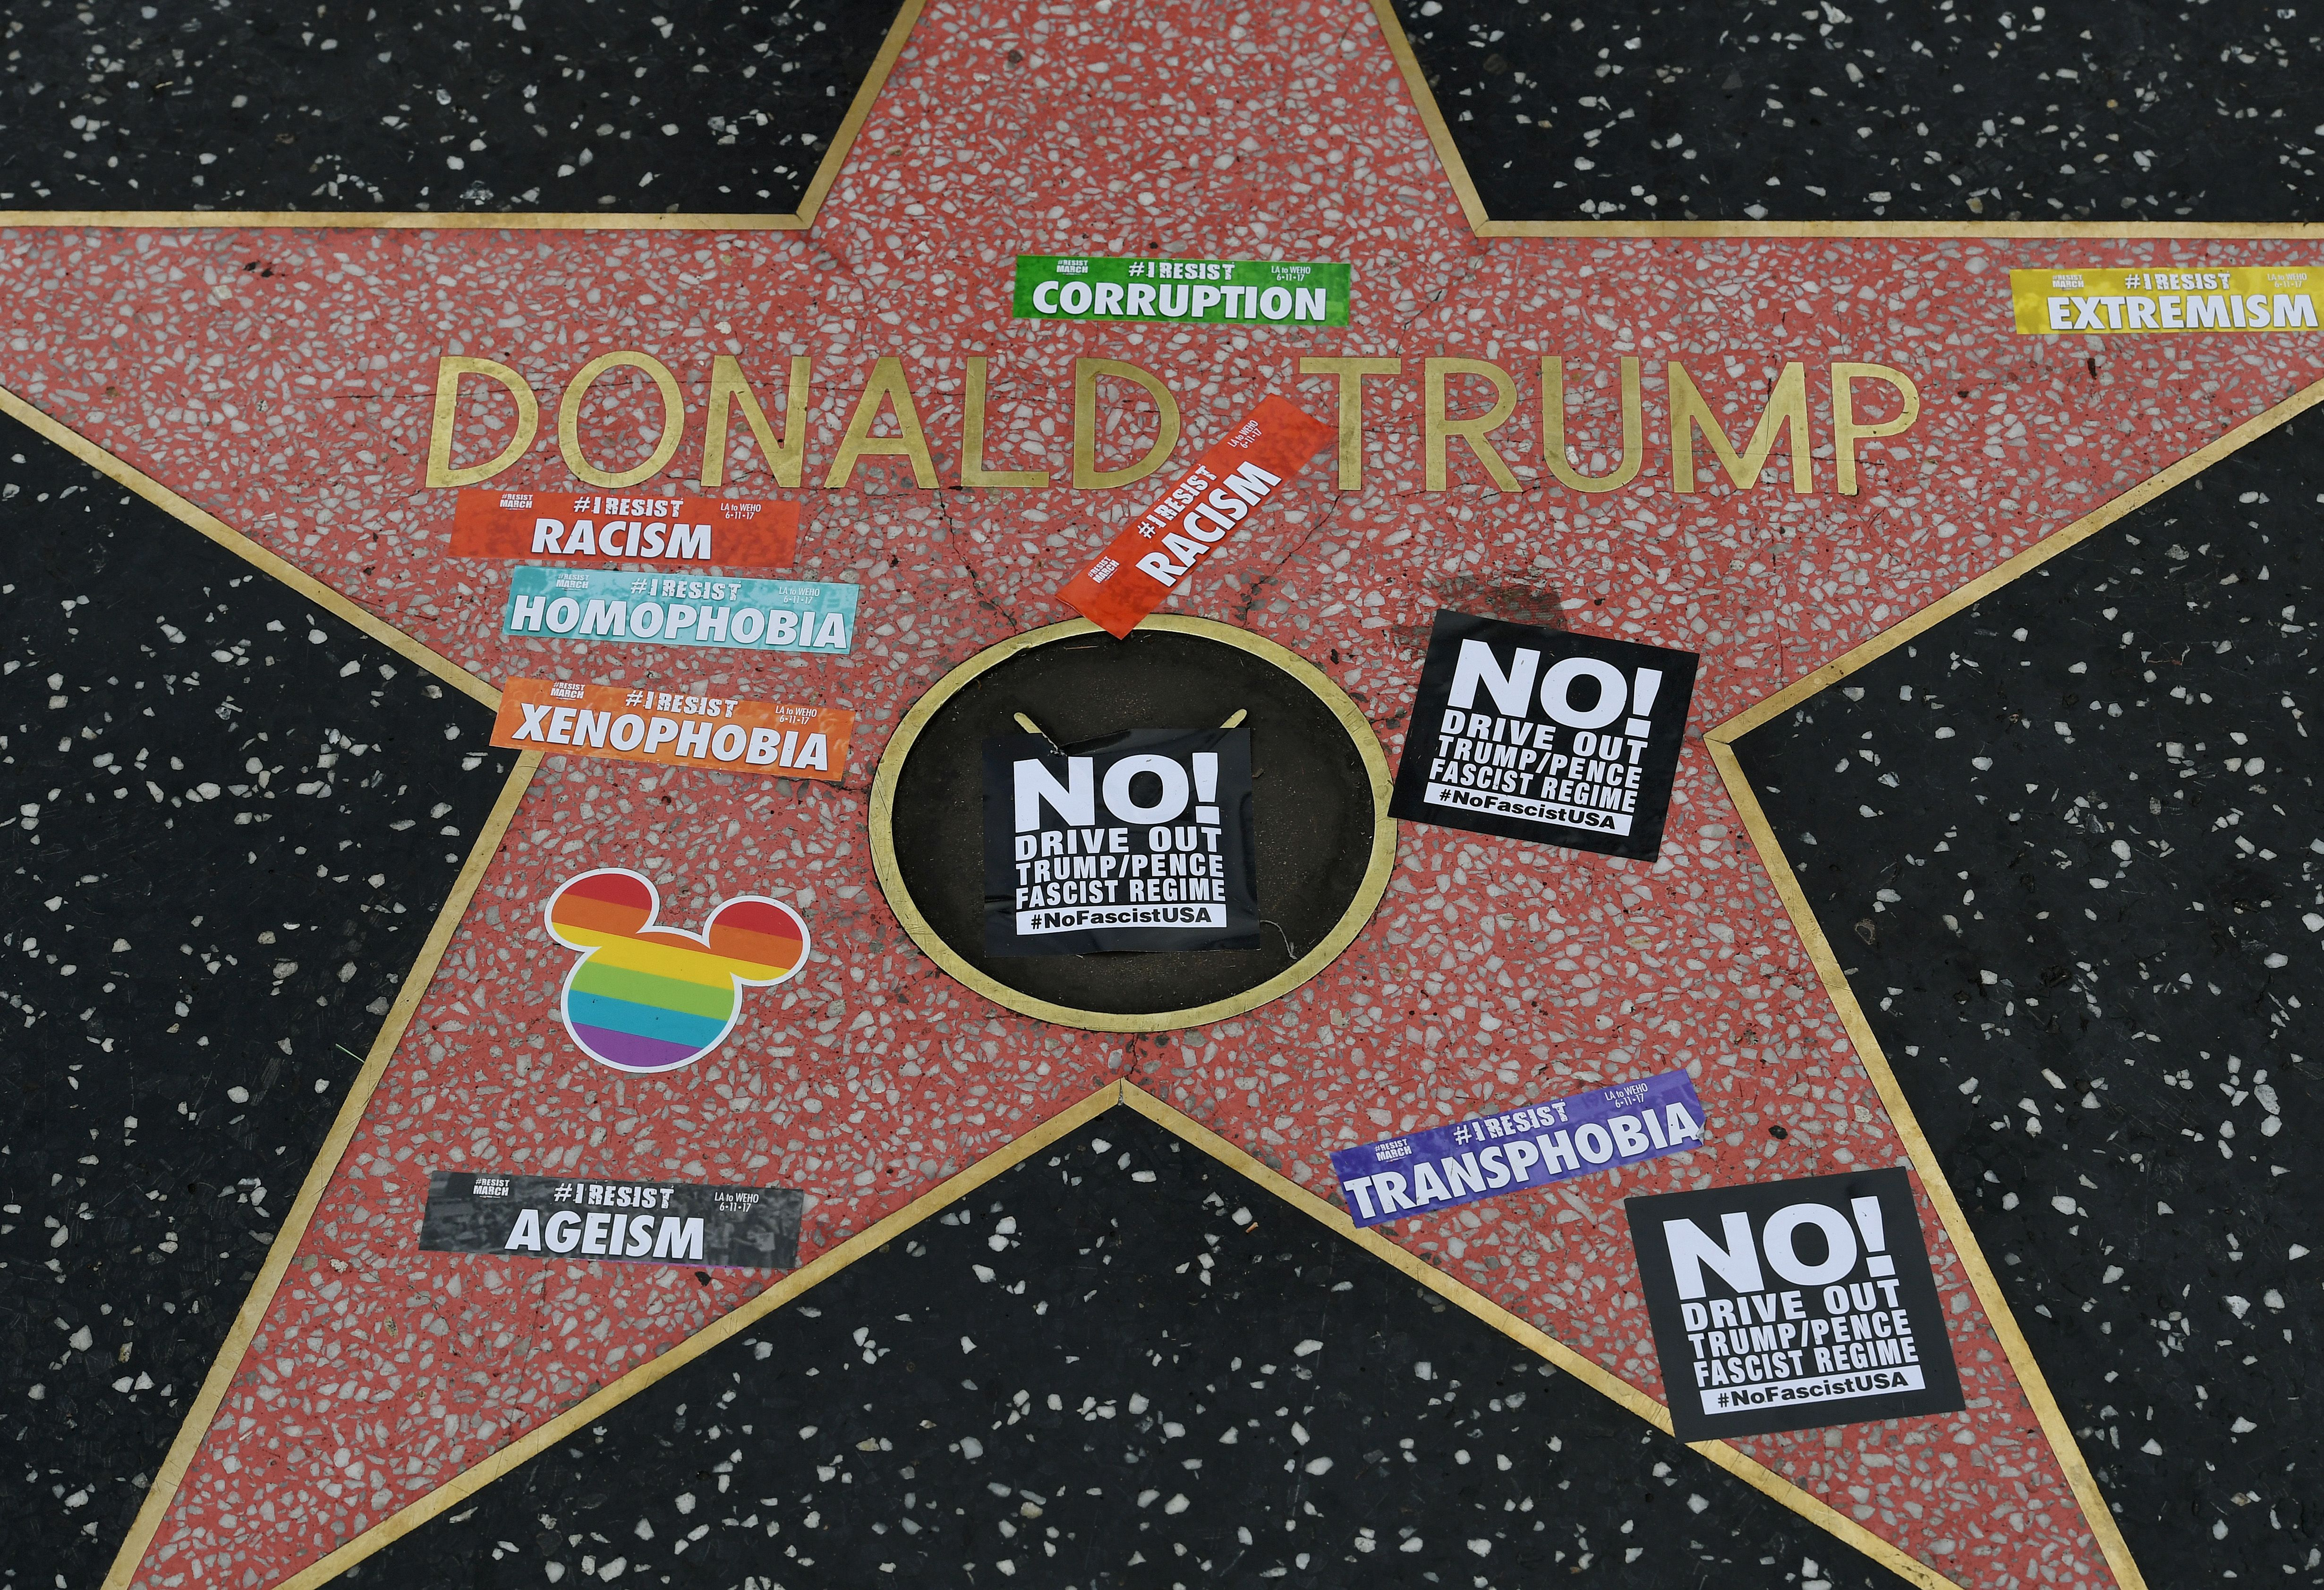 Gay pride stickers placed on the Hollywood Walk of Fame Star of President Donald Trump in Hollywood, Calif. on June 11, 2017.